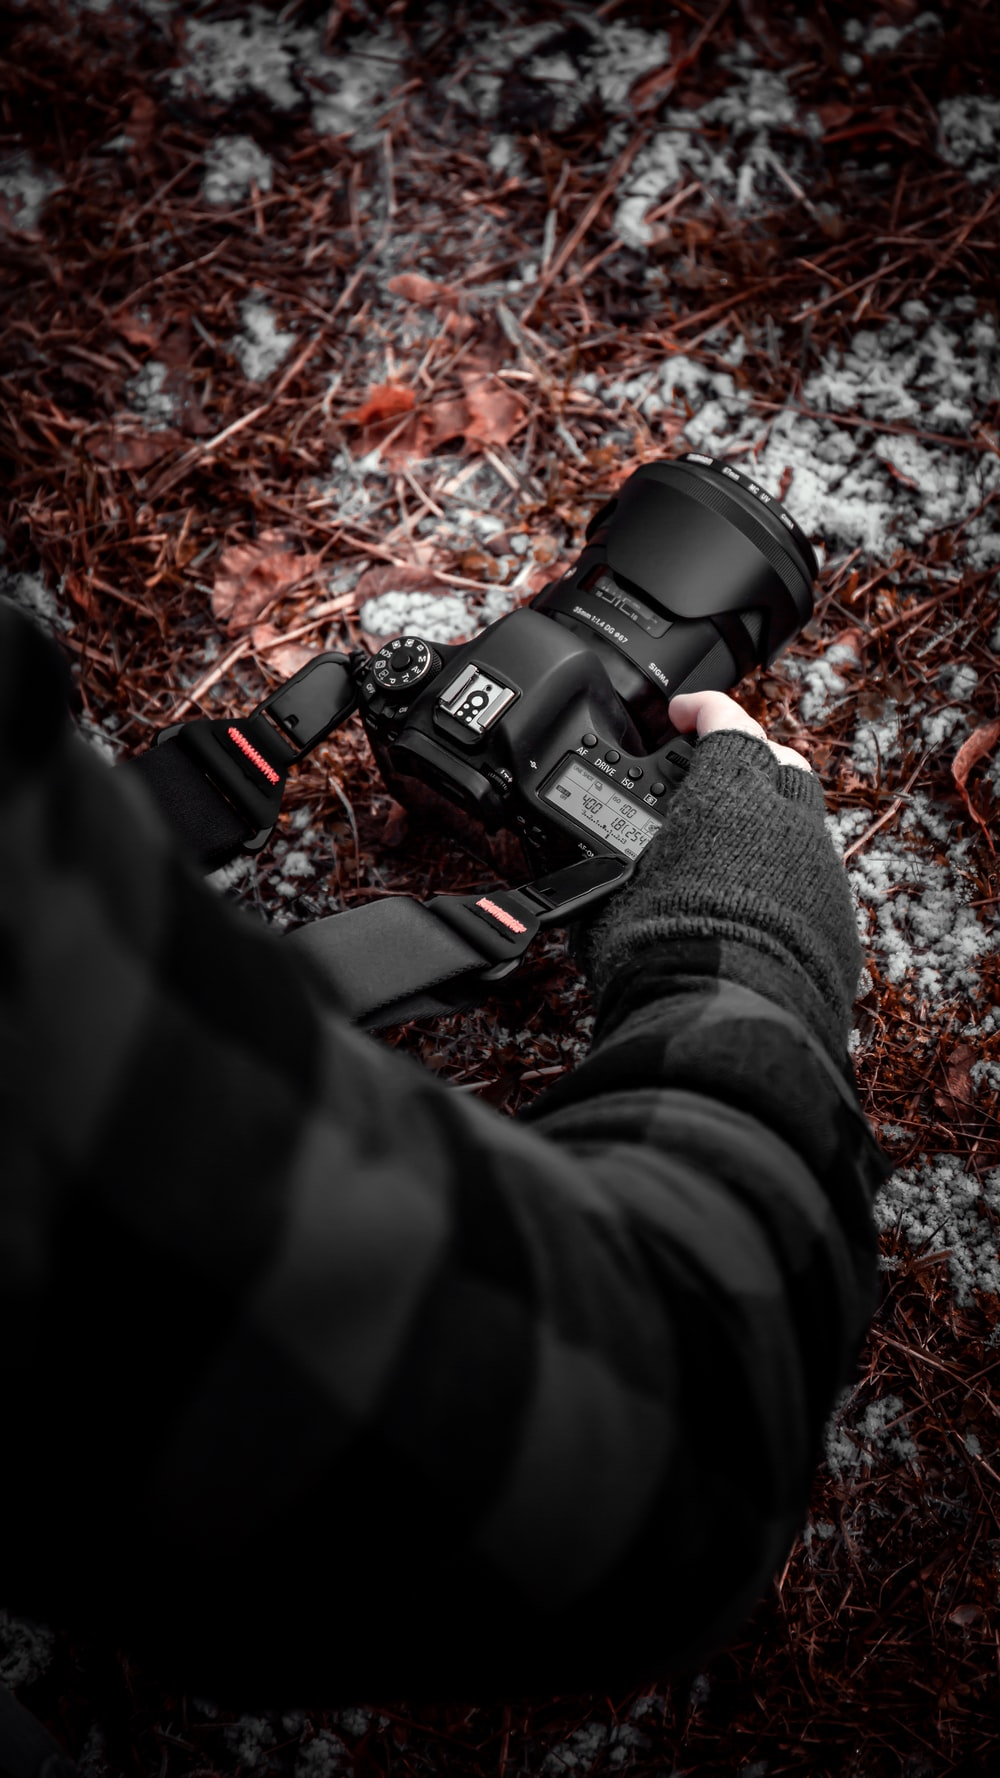 person in black and red jacket holding black dslr camera